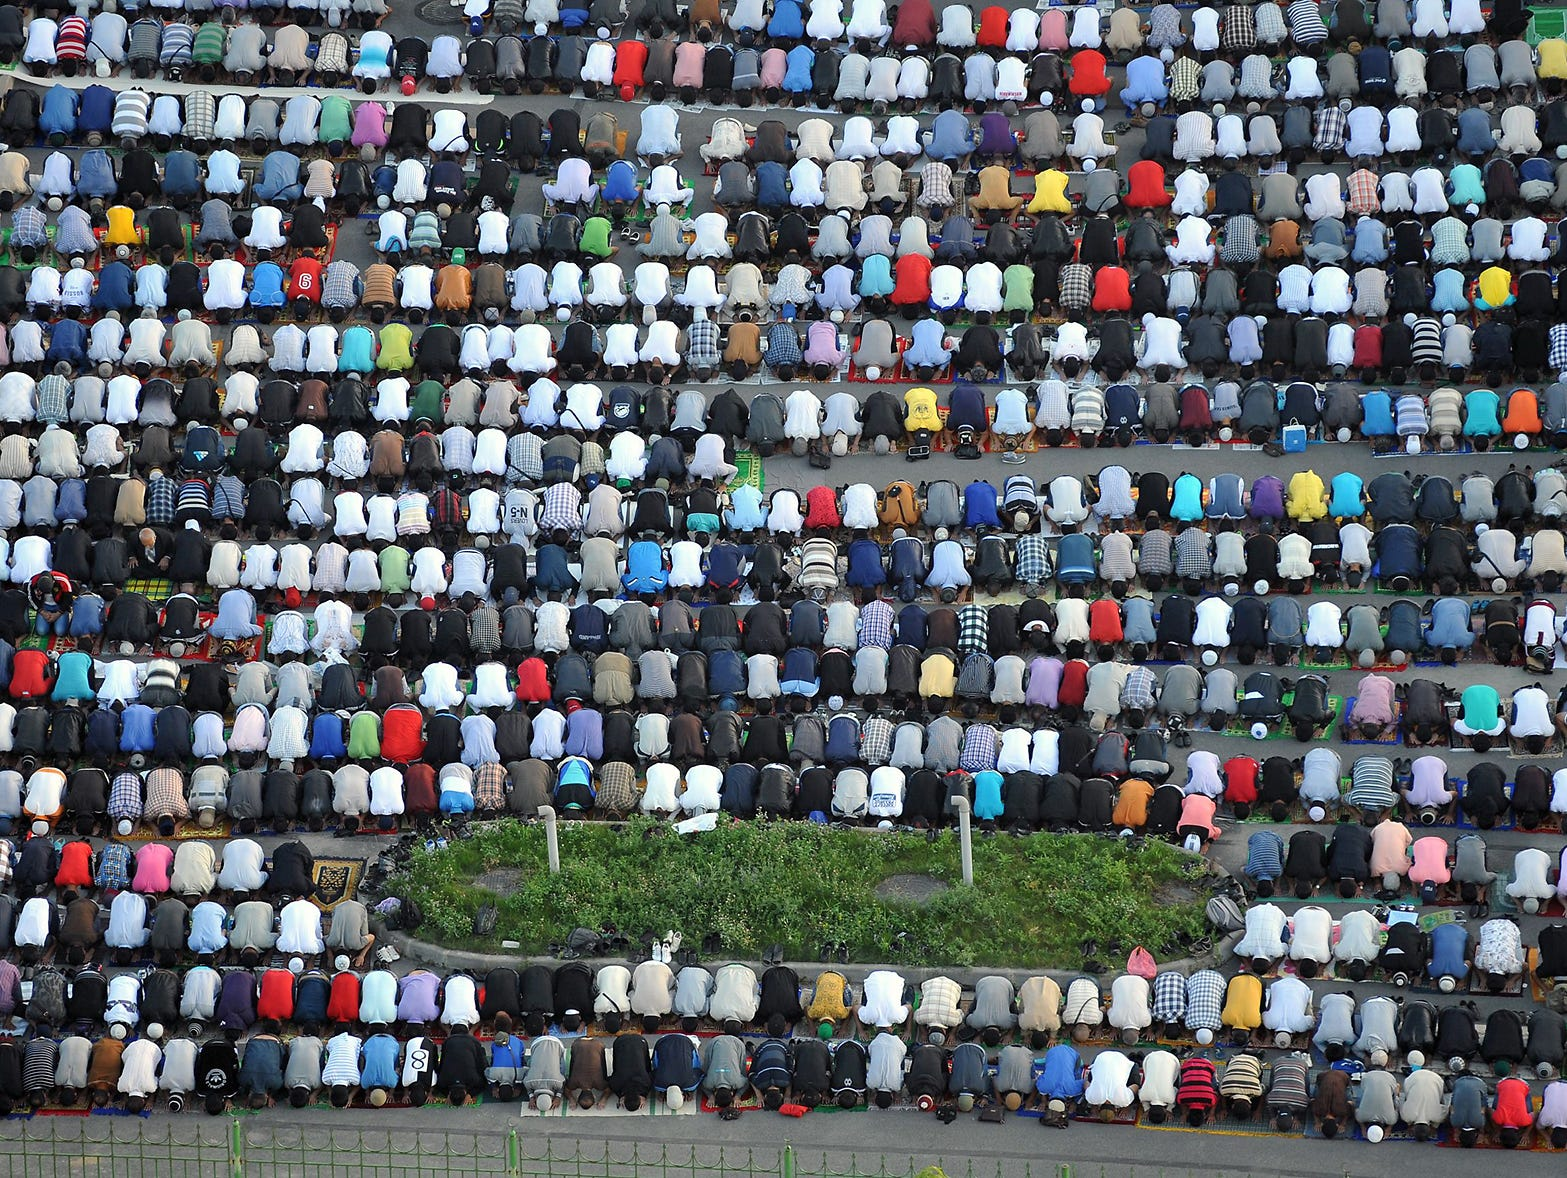 Muslims pray on the first day of Eid al-Fitr in St. Petersburg, Russia.